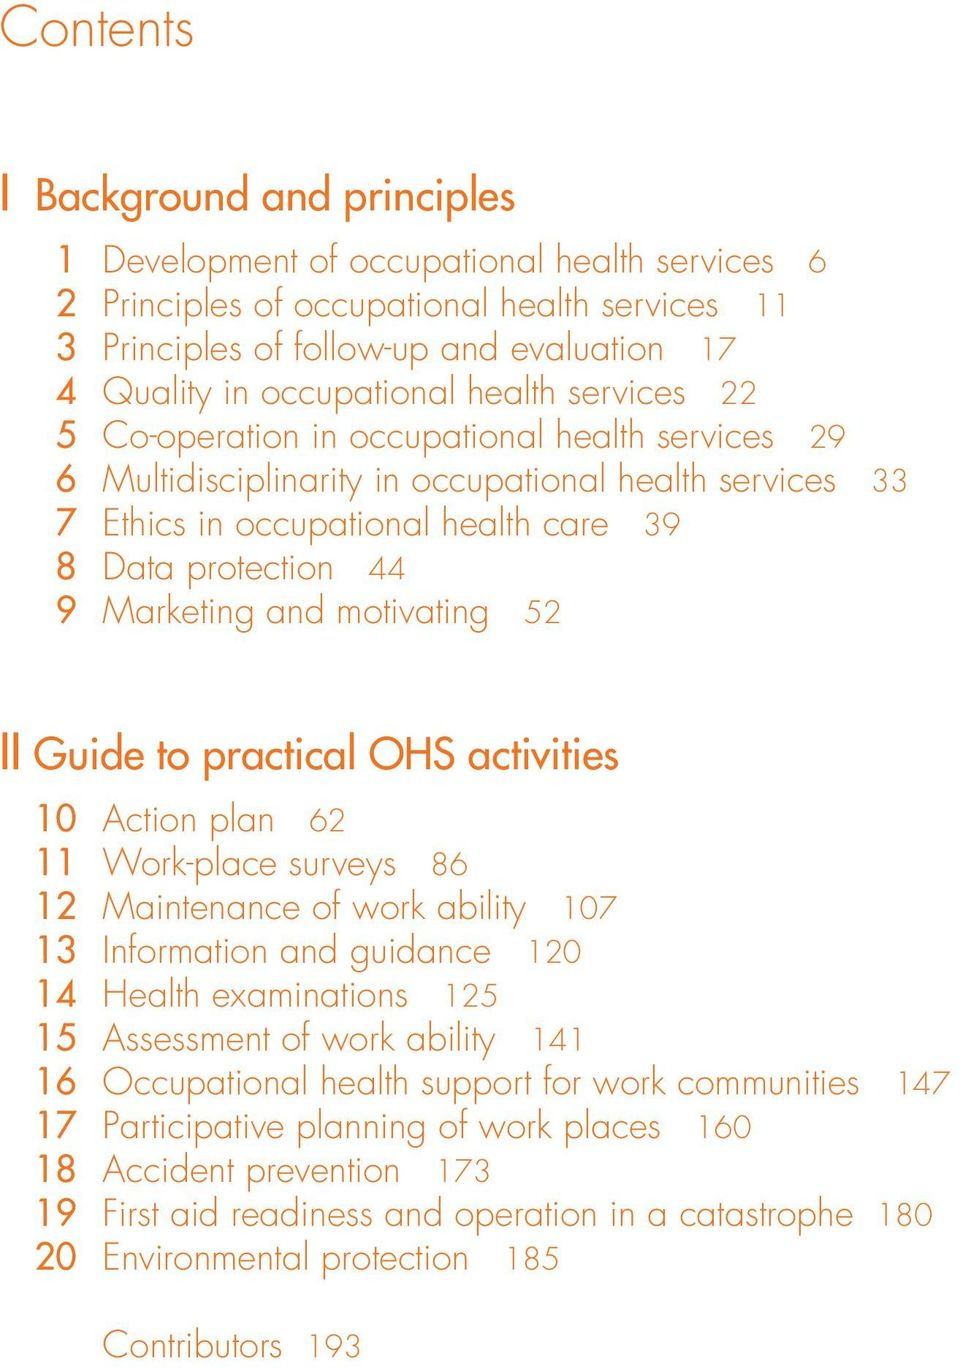 9 Marketing and motivating 52 II Guide to practical OHS activities 10 Action plan 62 11 Work-place surveys 86 12 Maintenance of work ability 107 13 Information and guidance 120 14 Health examinations